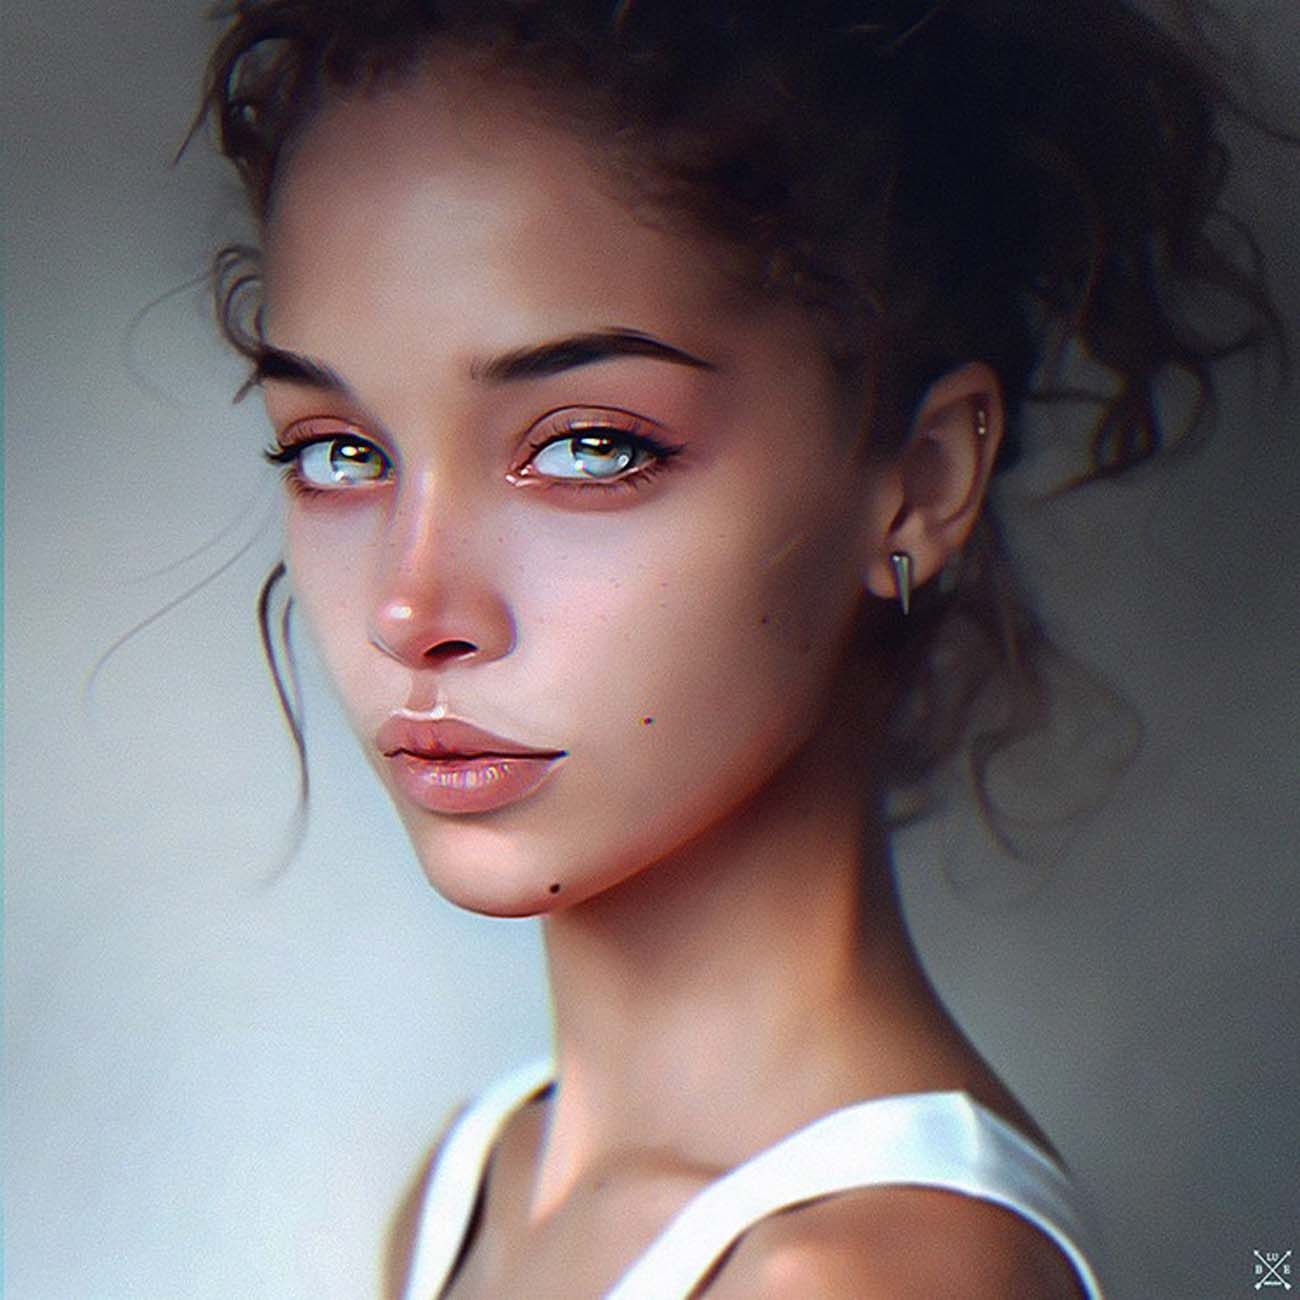 Digital Painting Inspiration #028 - Paintable